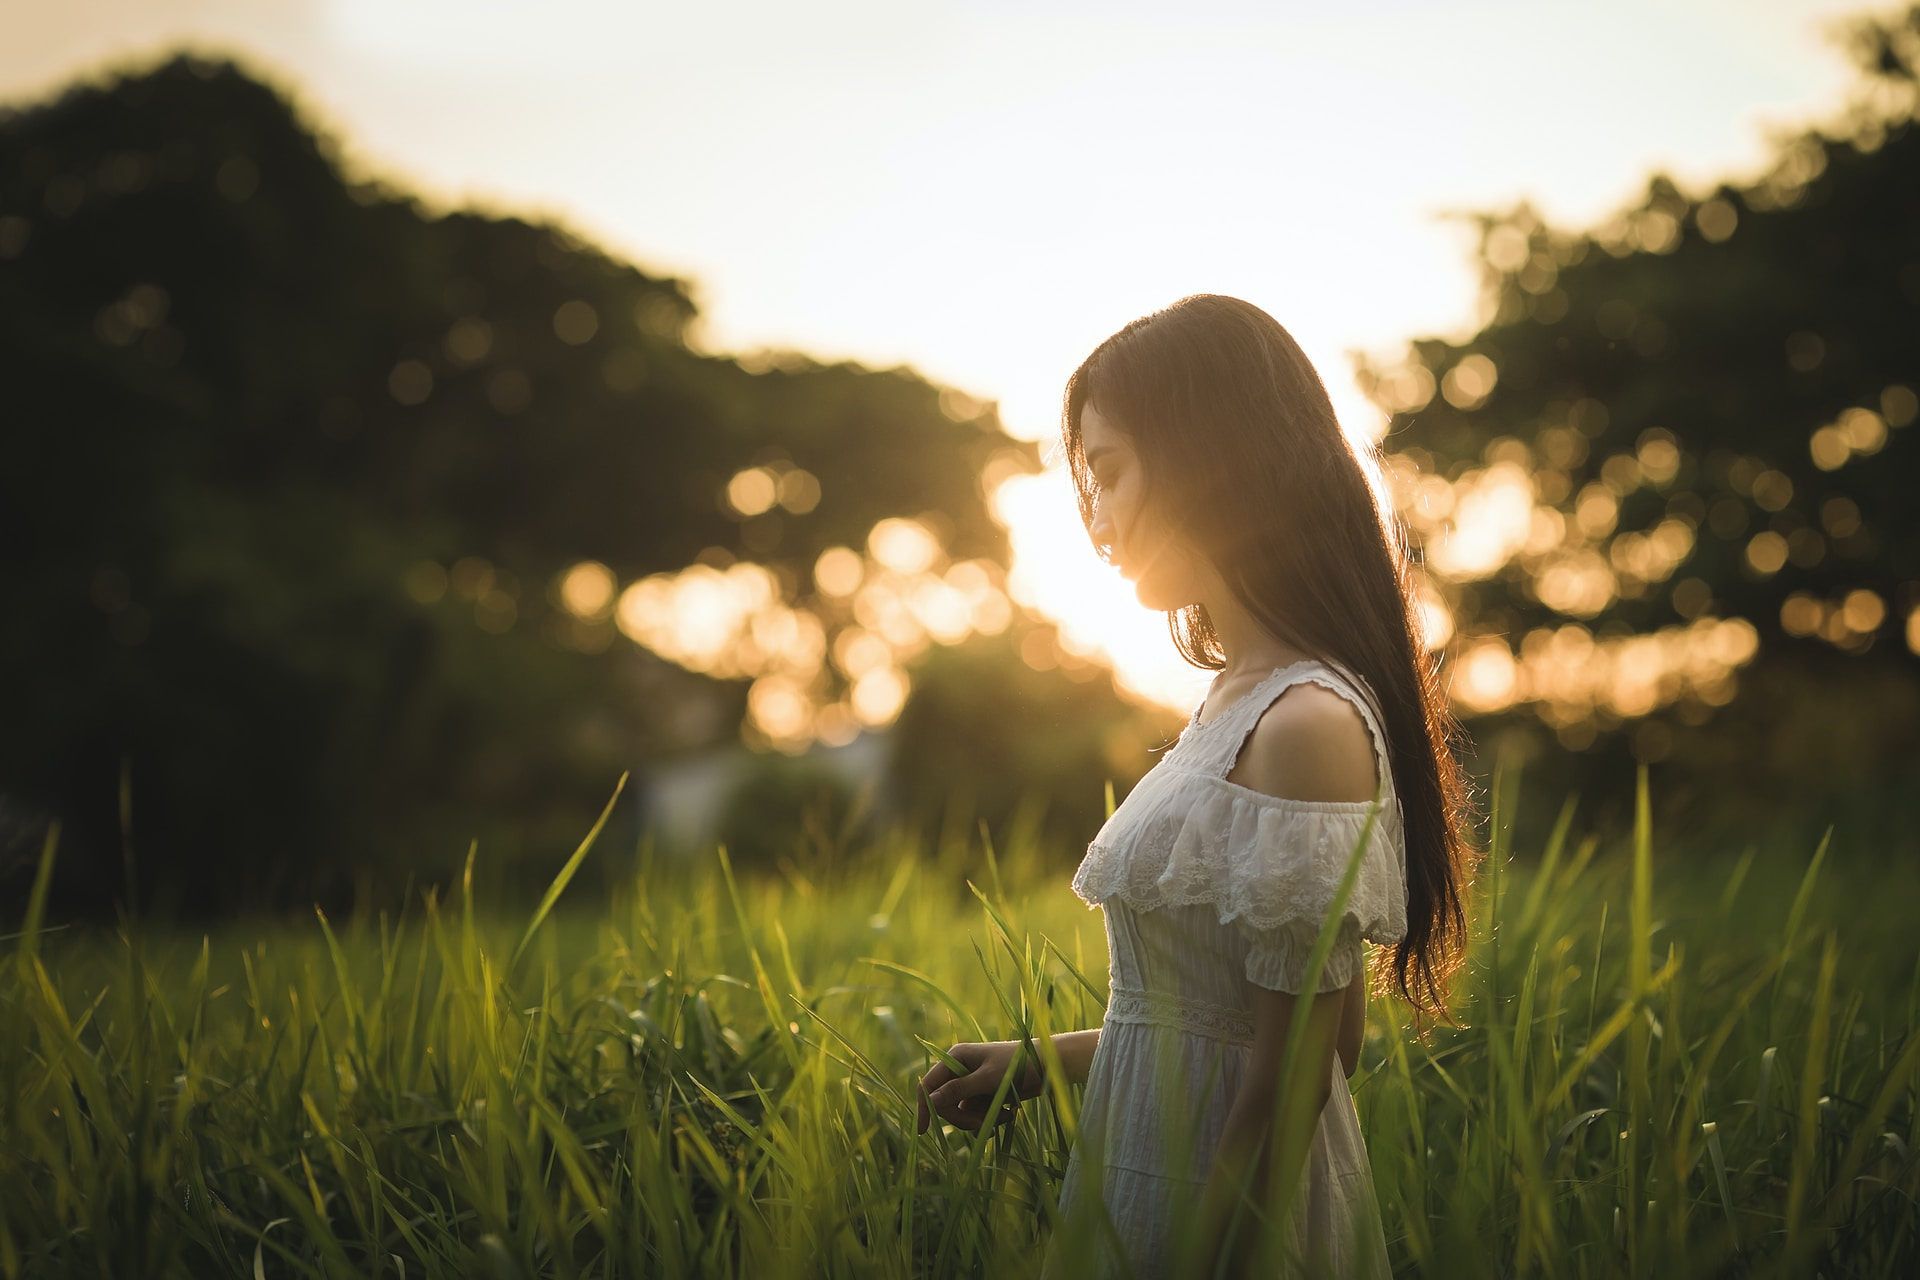 shallow focus photography of woman standing on grass field while holding grass